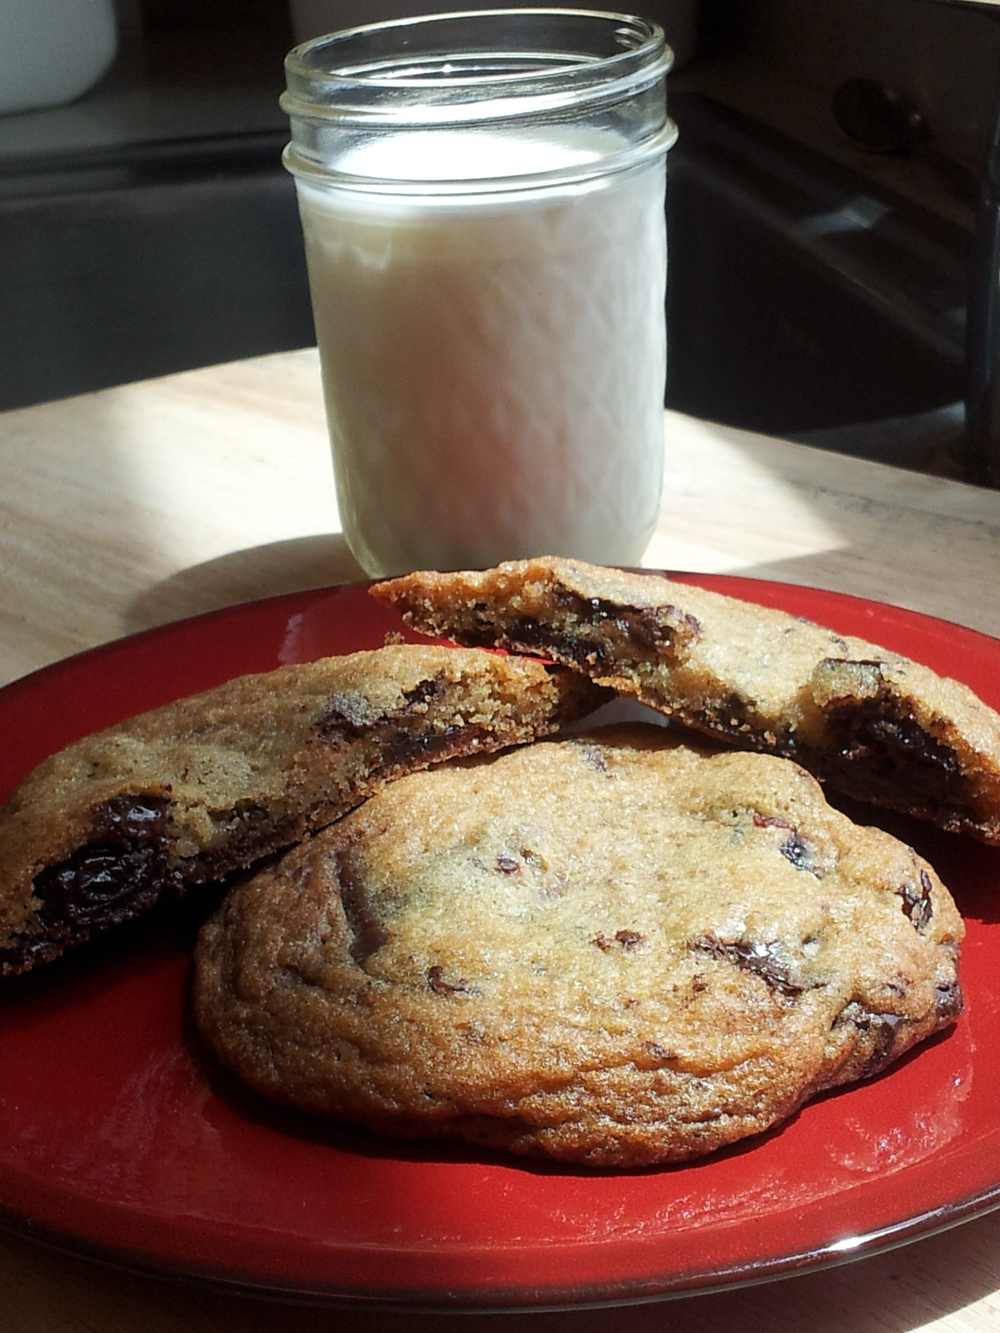 Chocolate Cherry Chunk Cookie and Raw Milk- Yum!